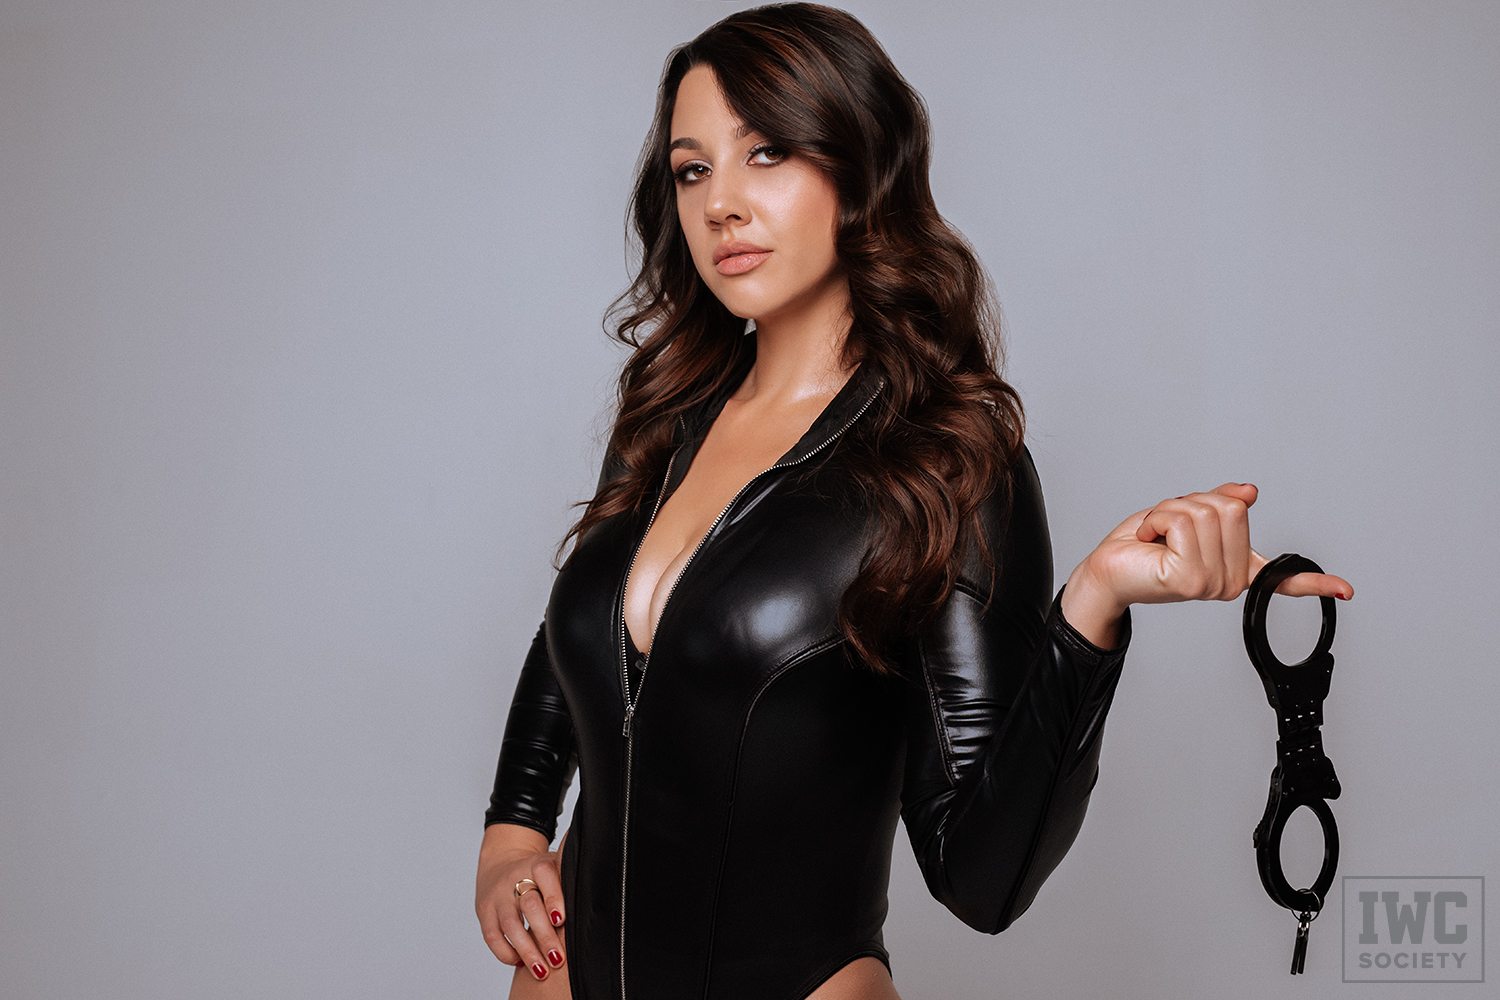 financial dominatrix Ceara Lynch holding black handcuffs